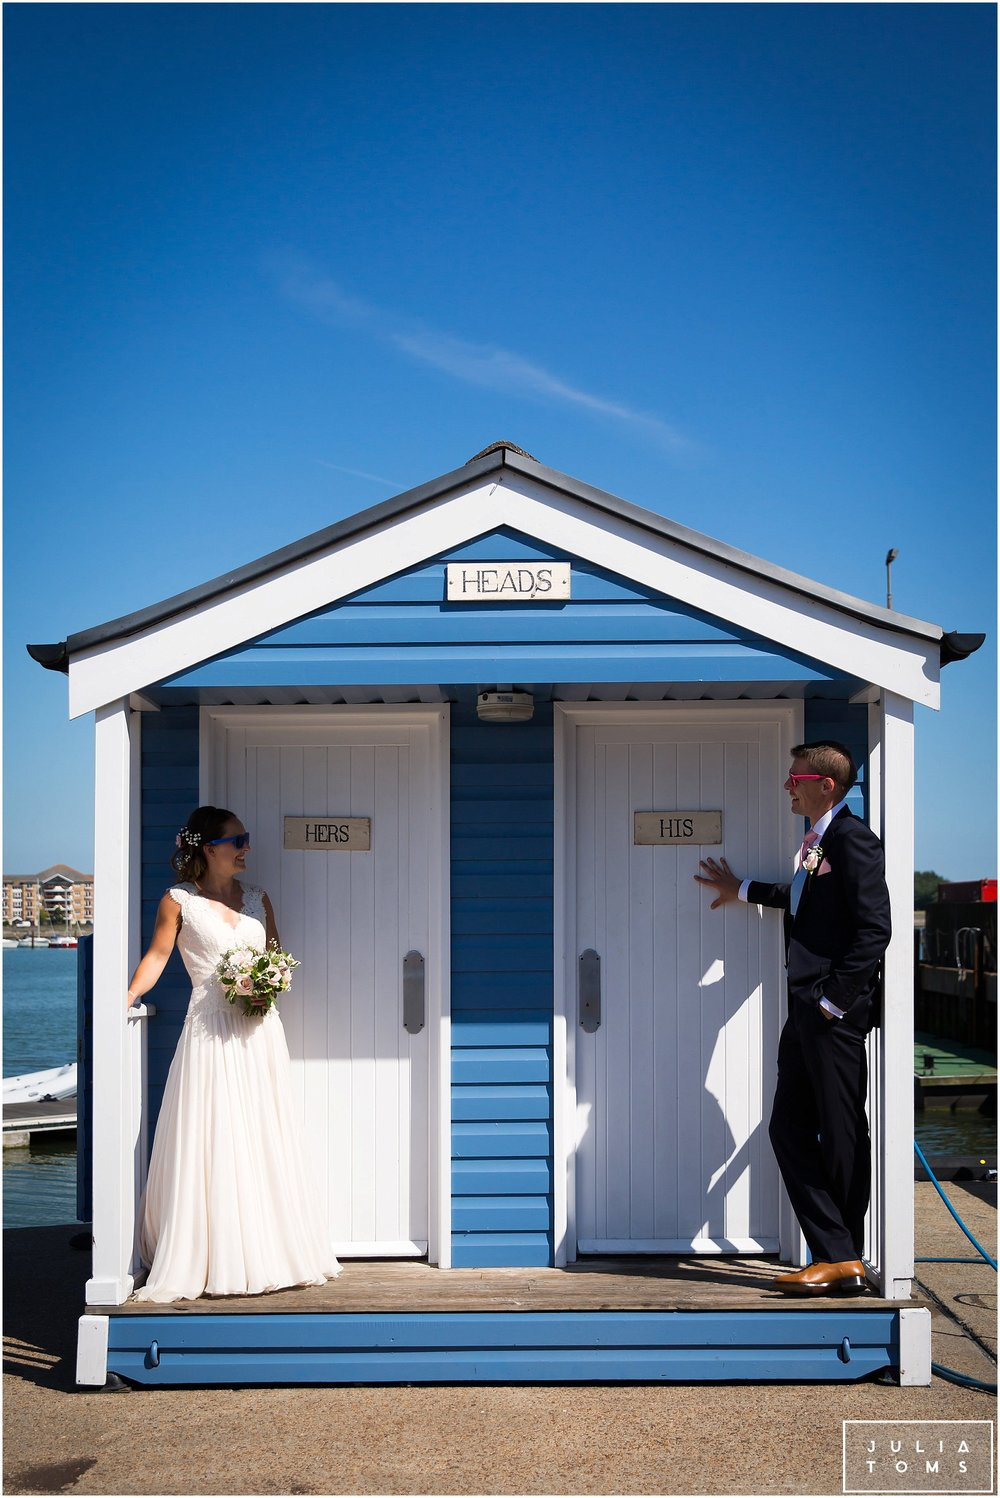 julia_toms_chichester_wedding_photographer_portsmouth_038.jpg